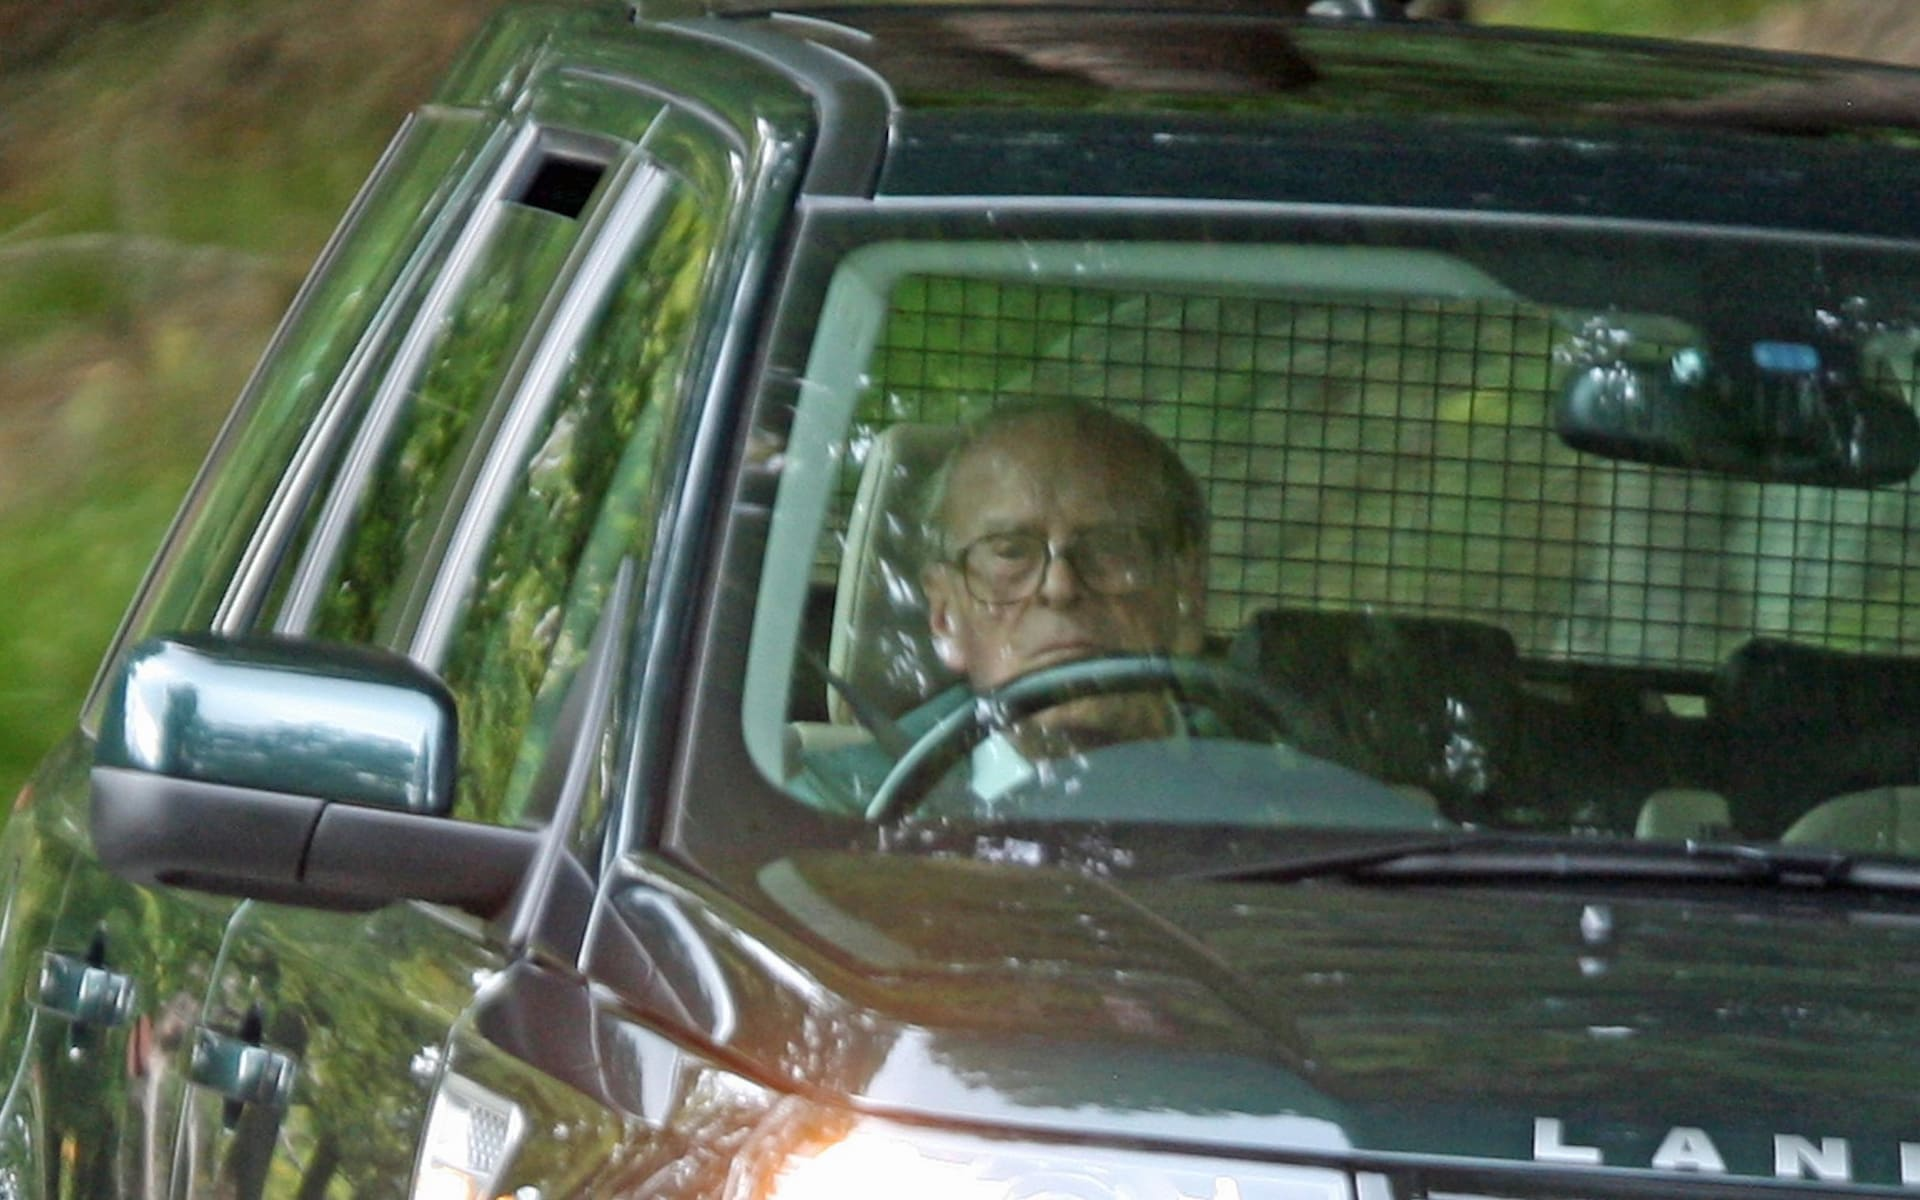 Prince Philip 'could be sent on driving awareness course' as police investigate crash